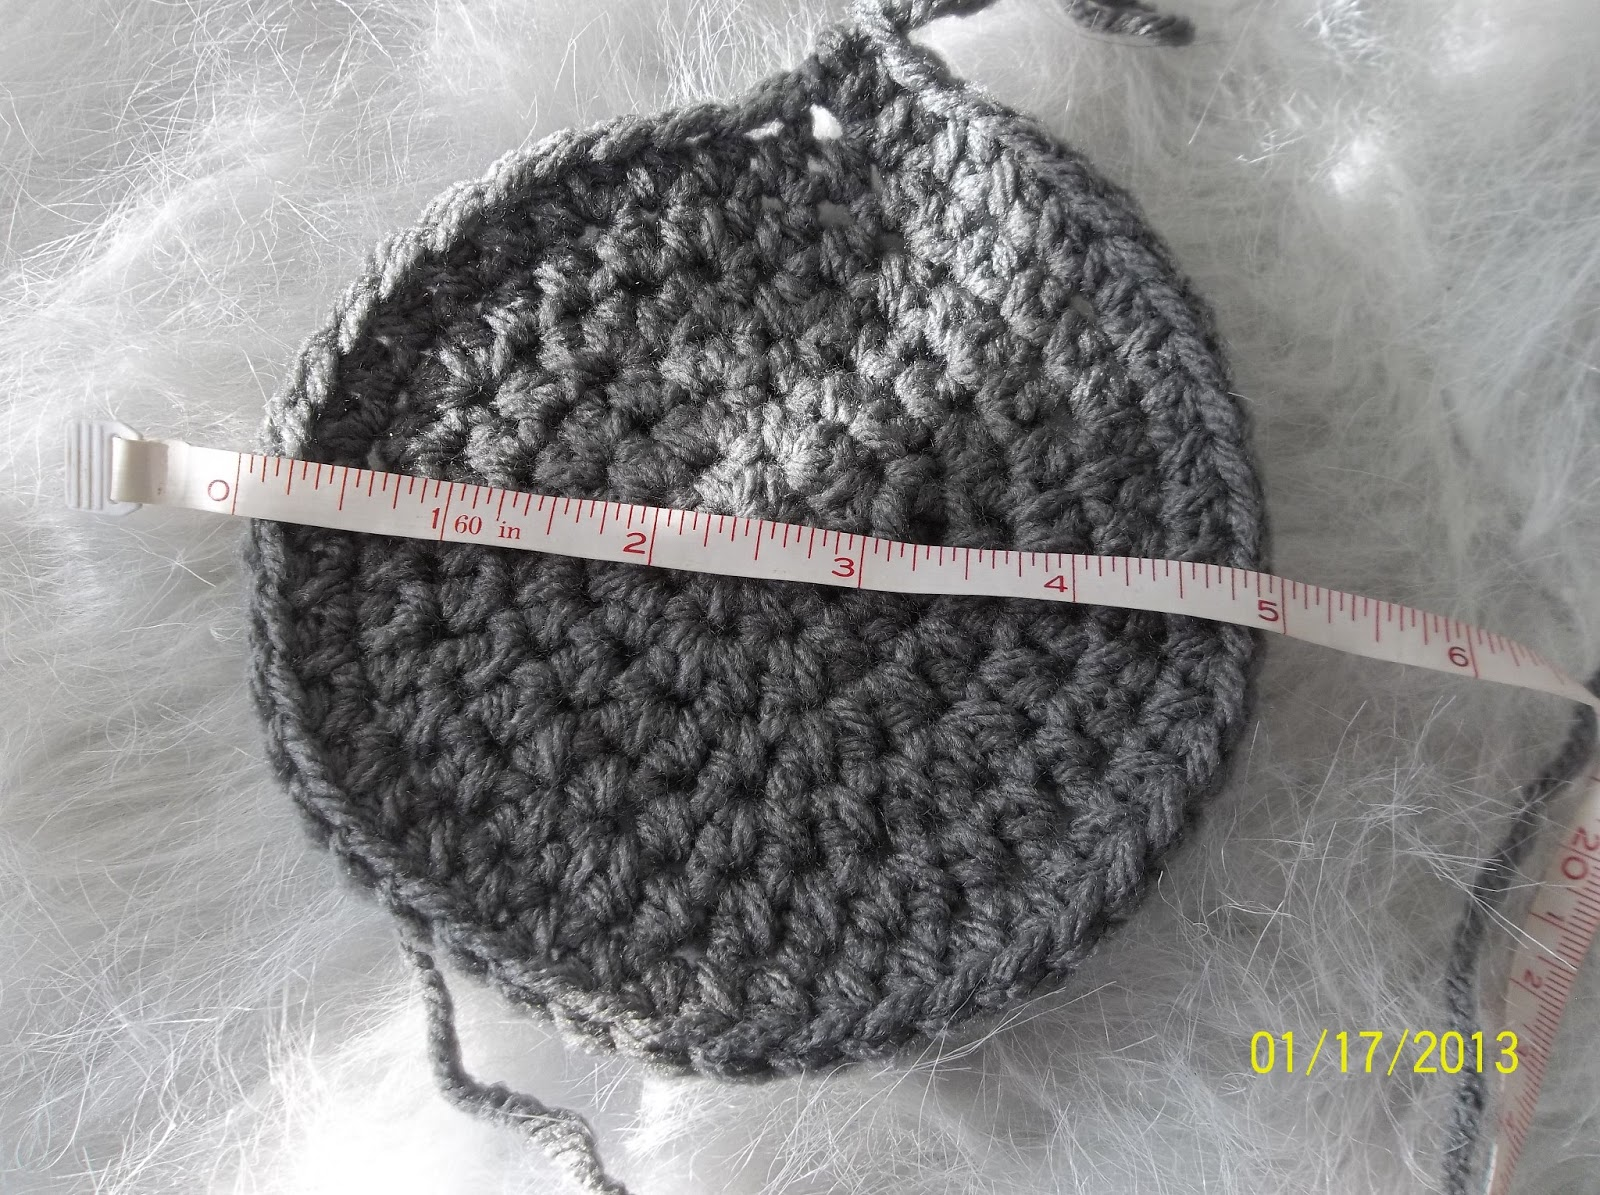 ... size crochet hats. Chart for correct sizing, including Magic Circle